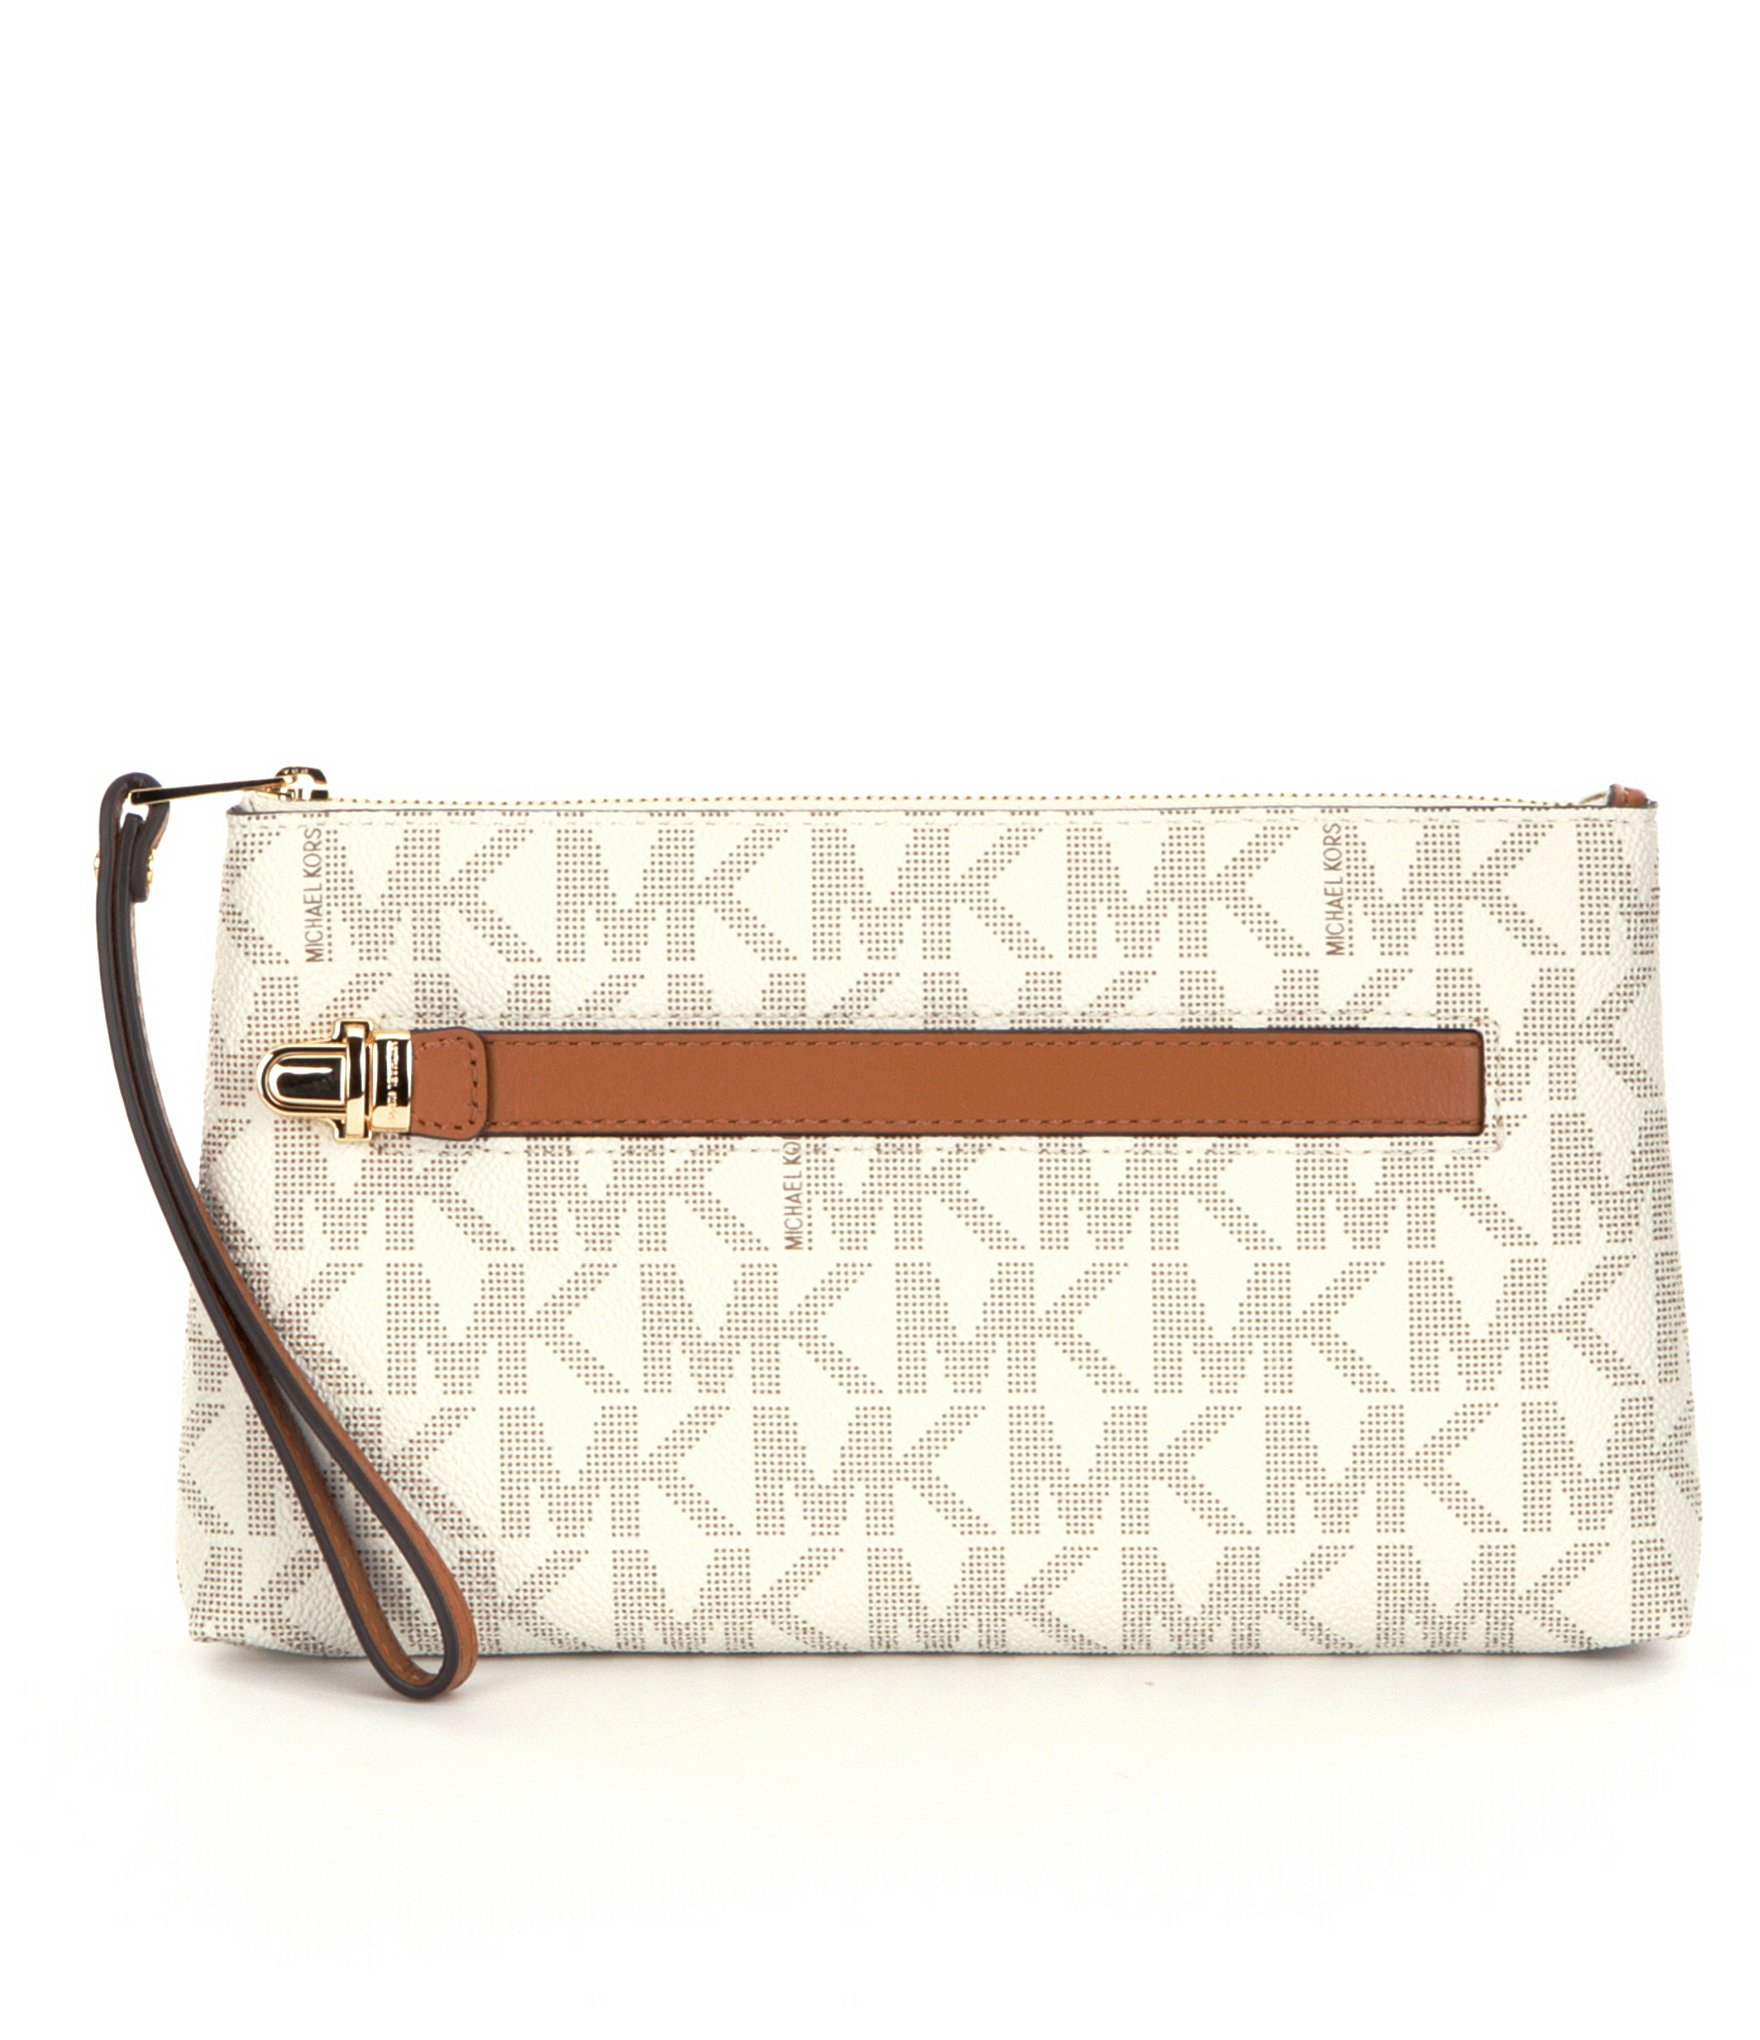 264b5fb875c86 Lyst - MICHAEL Michael Kors Charlton Medium Wristlet in White